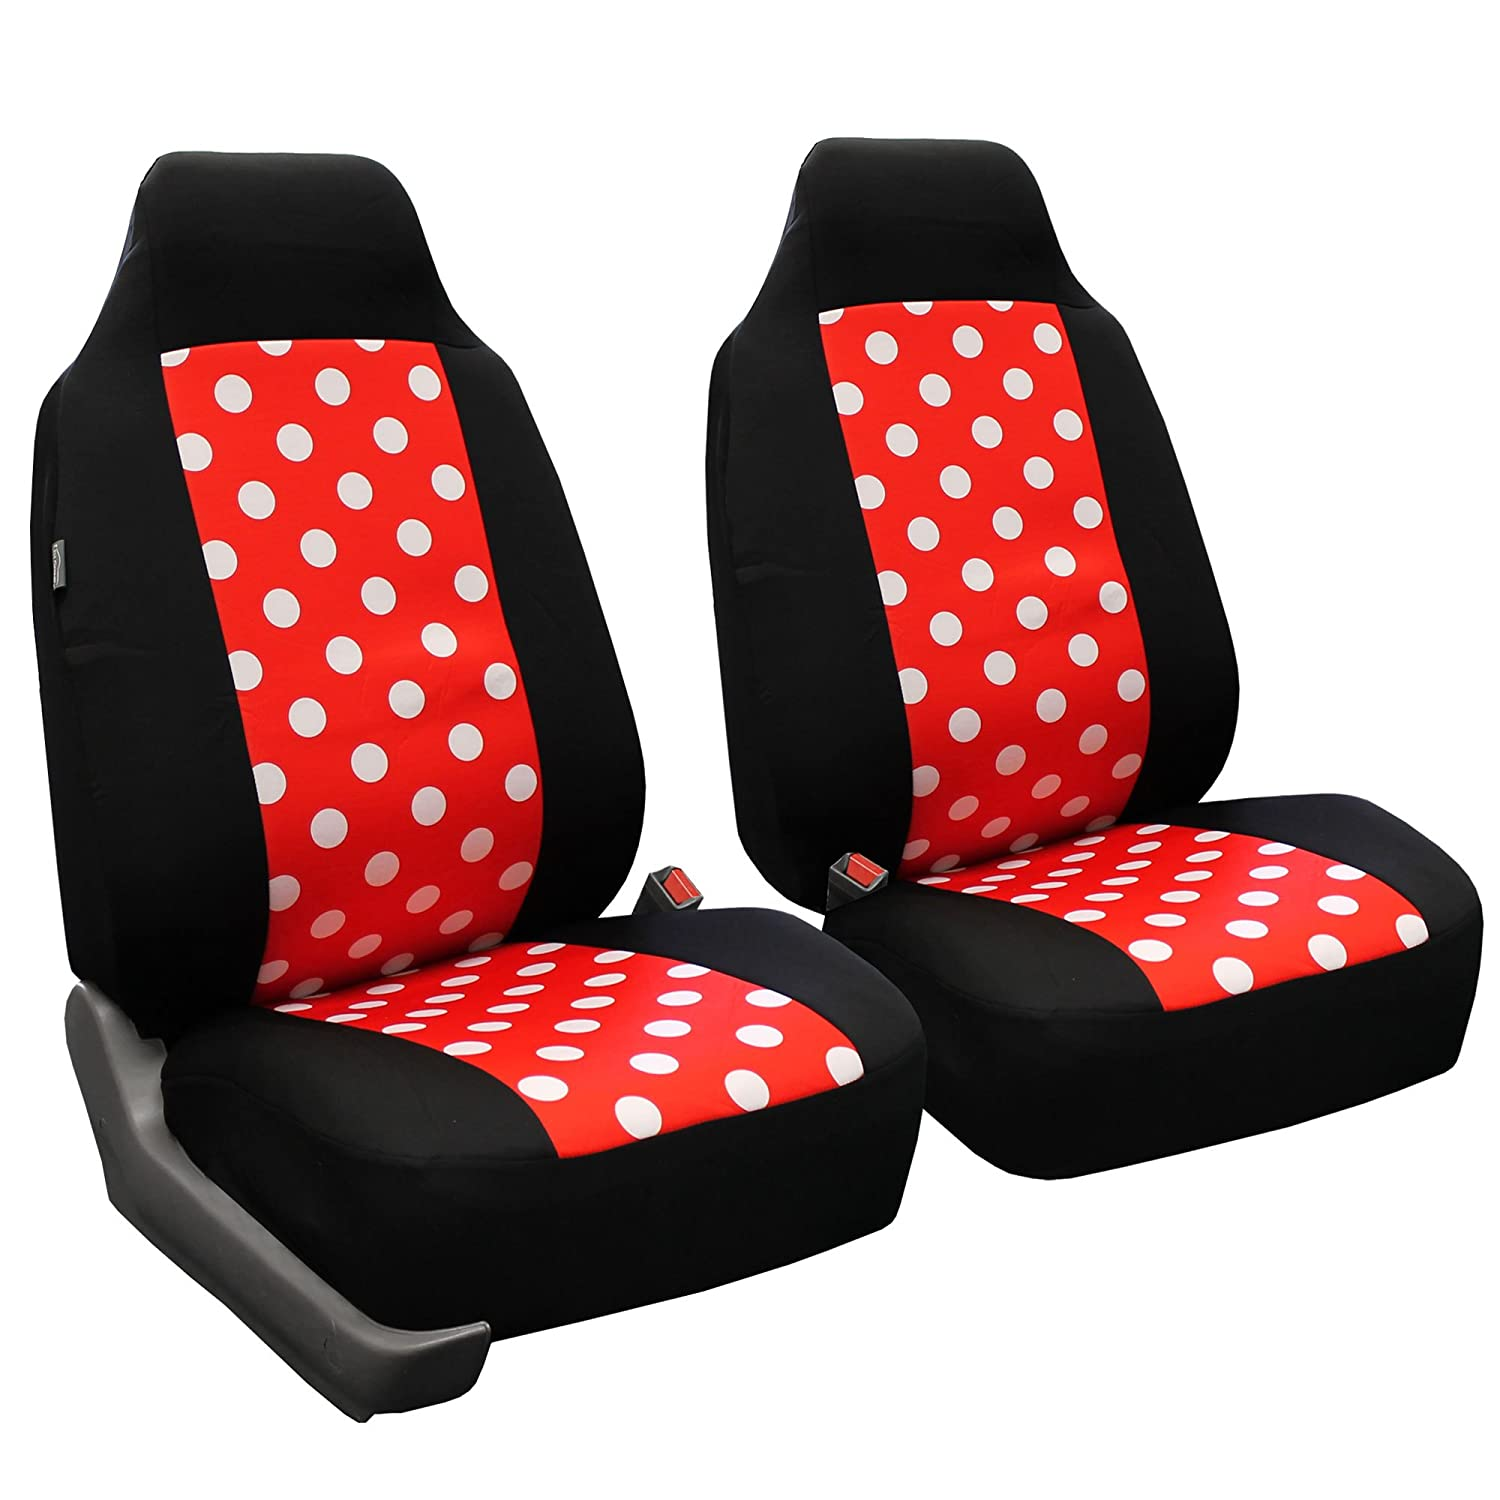 FH Group PU208102 Futuristic Front Pair Seat Cushions Leatherette w. Non Slip Backing or Van Solid Black Color w Fit Most Car SUV Truck